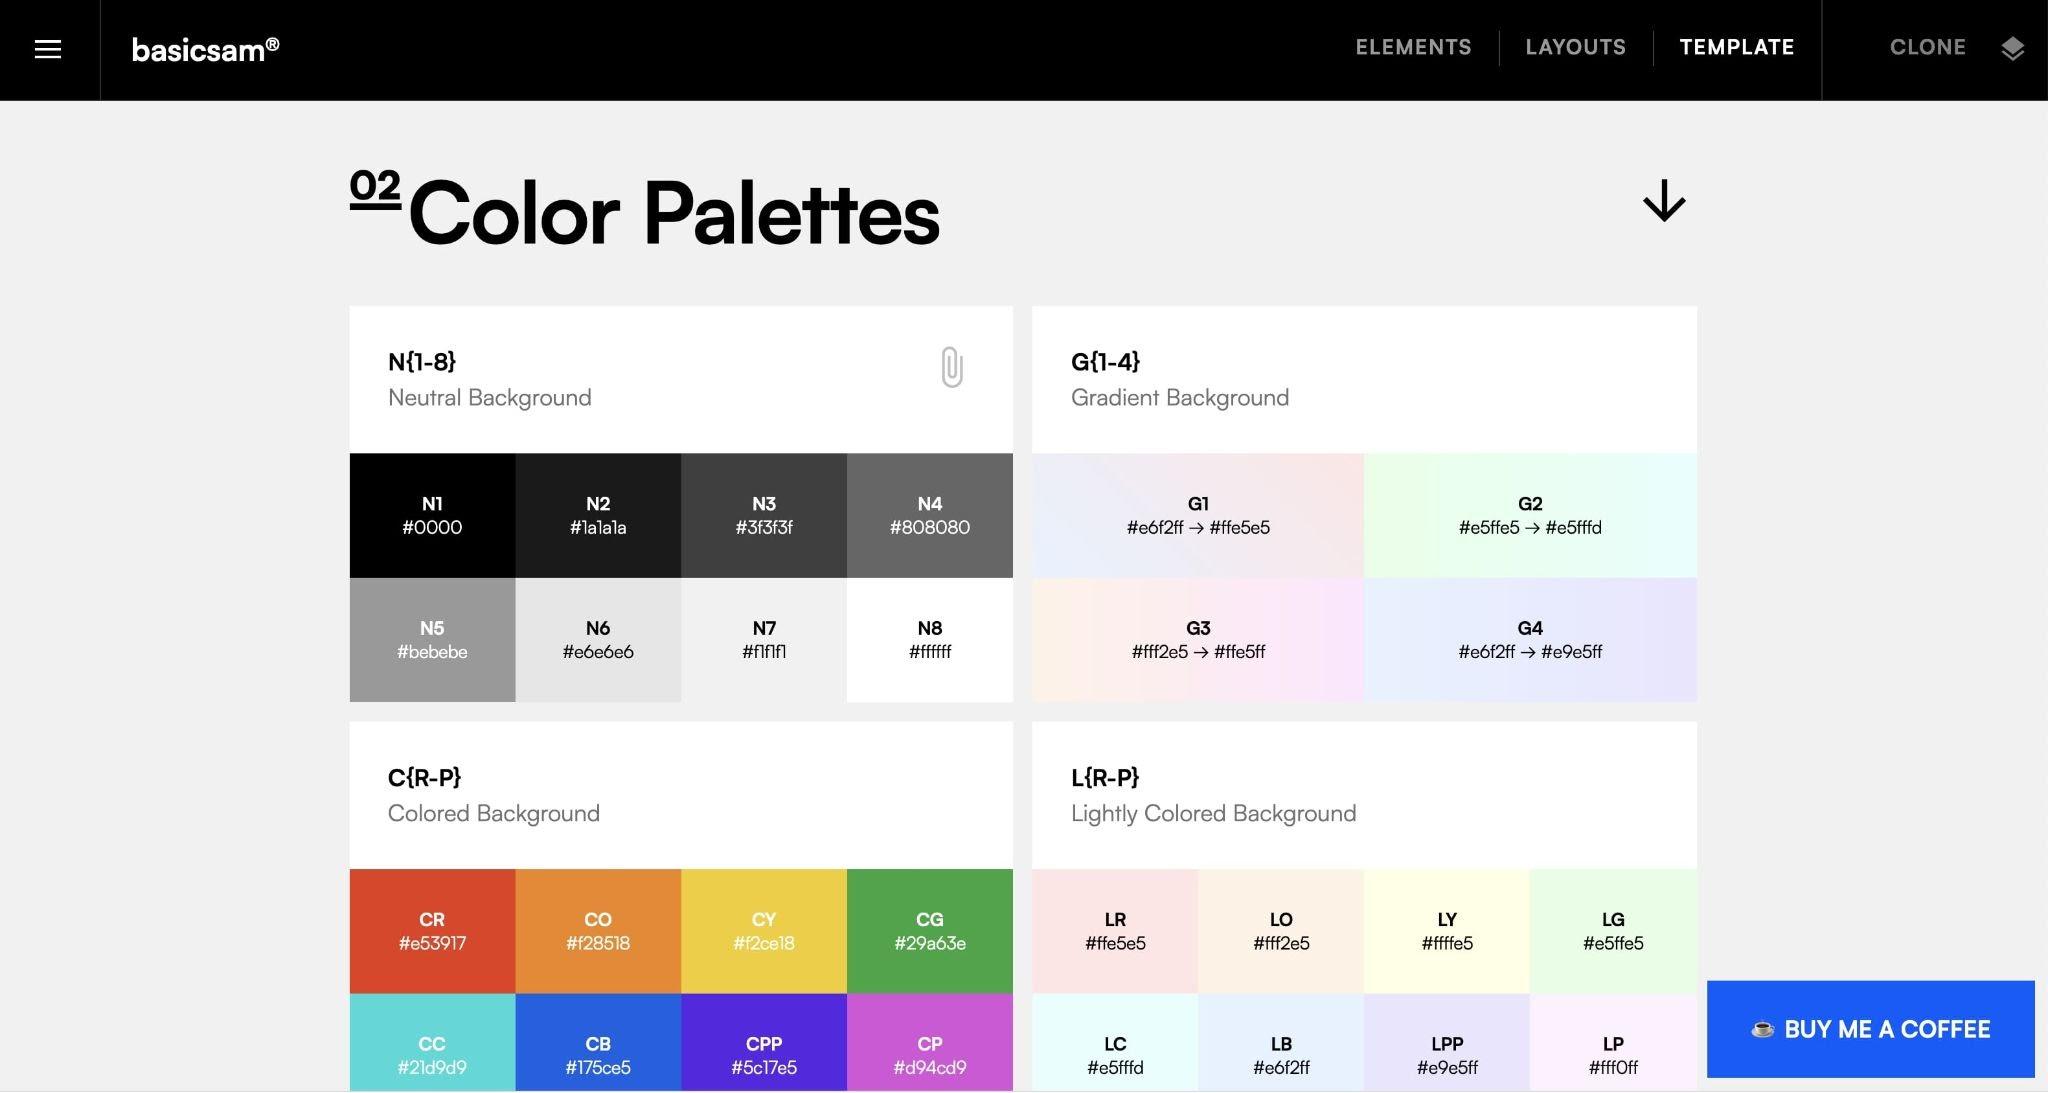 An image of the Color Palette's section in the Style Guide template.